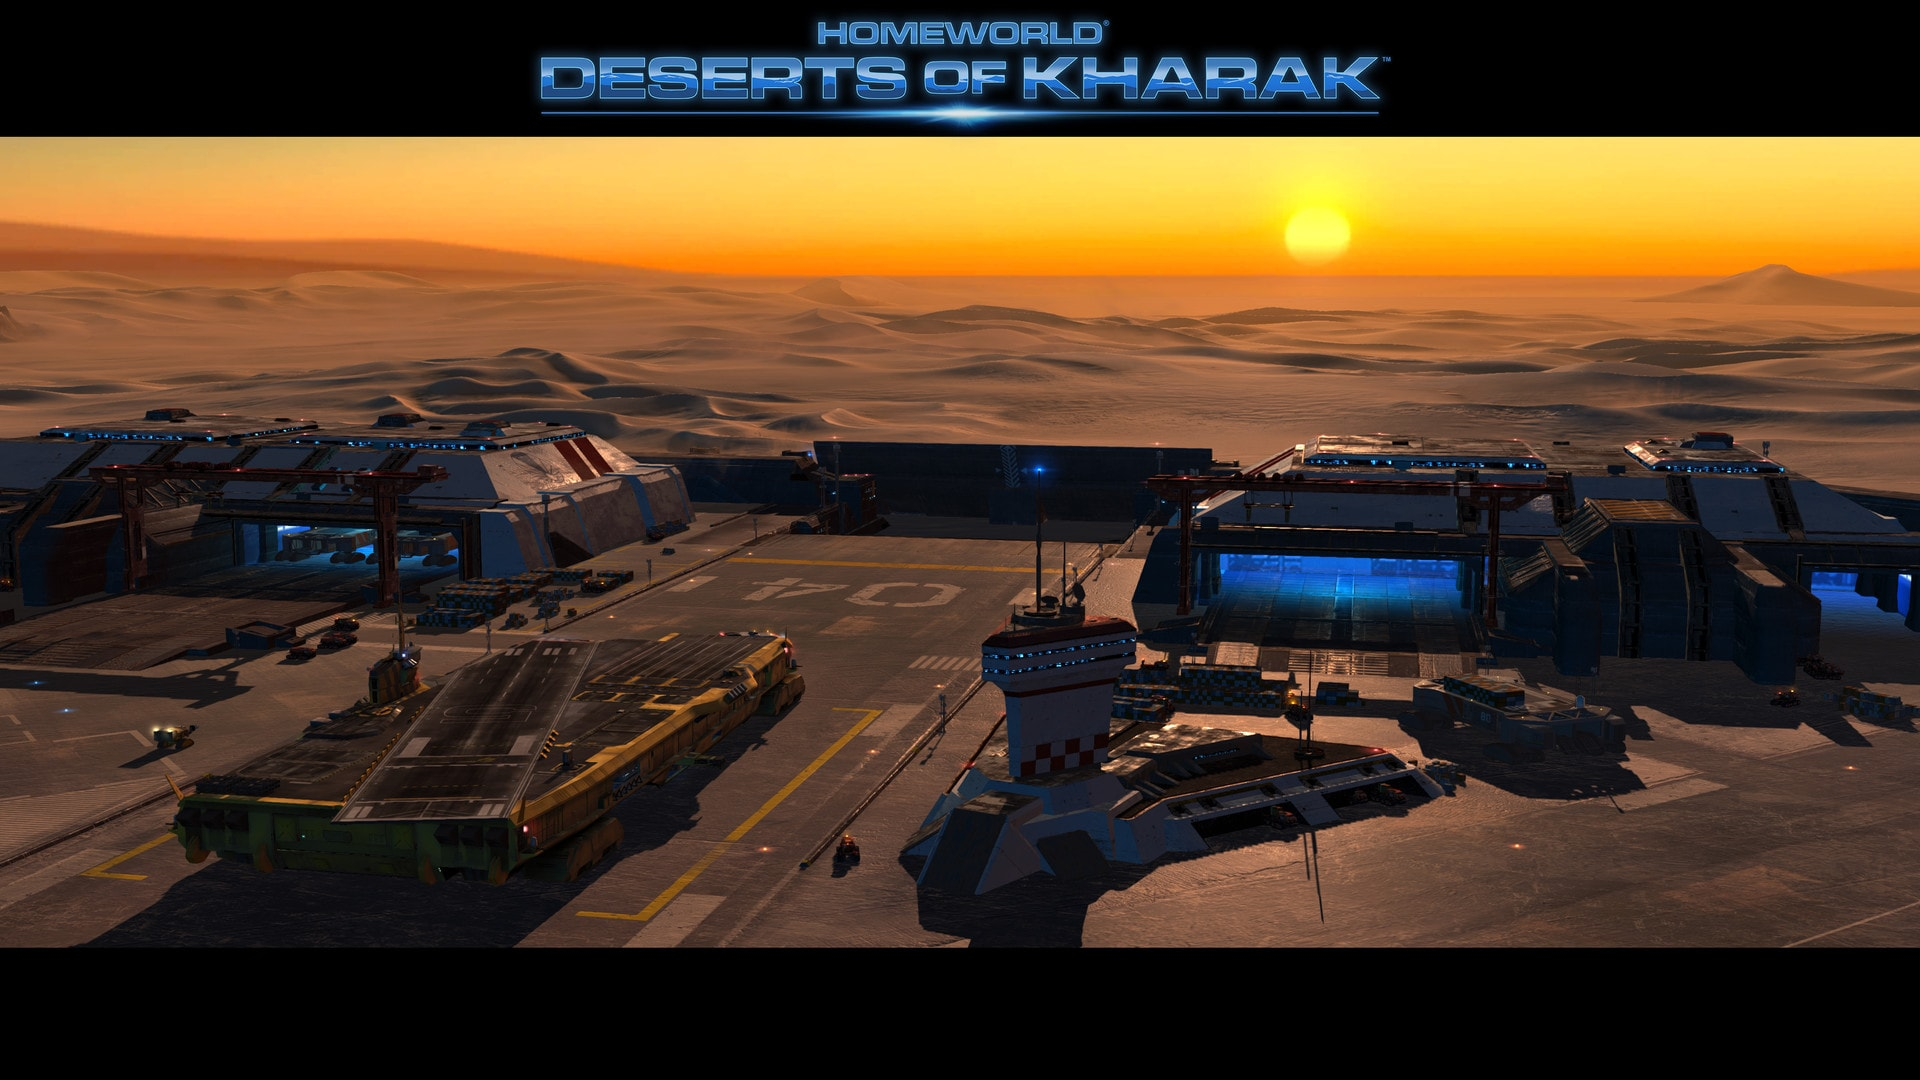 Homeworld: Deserts of Kharak Wallpapers